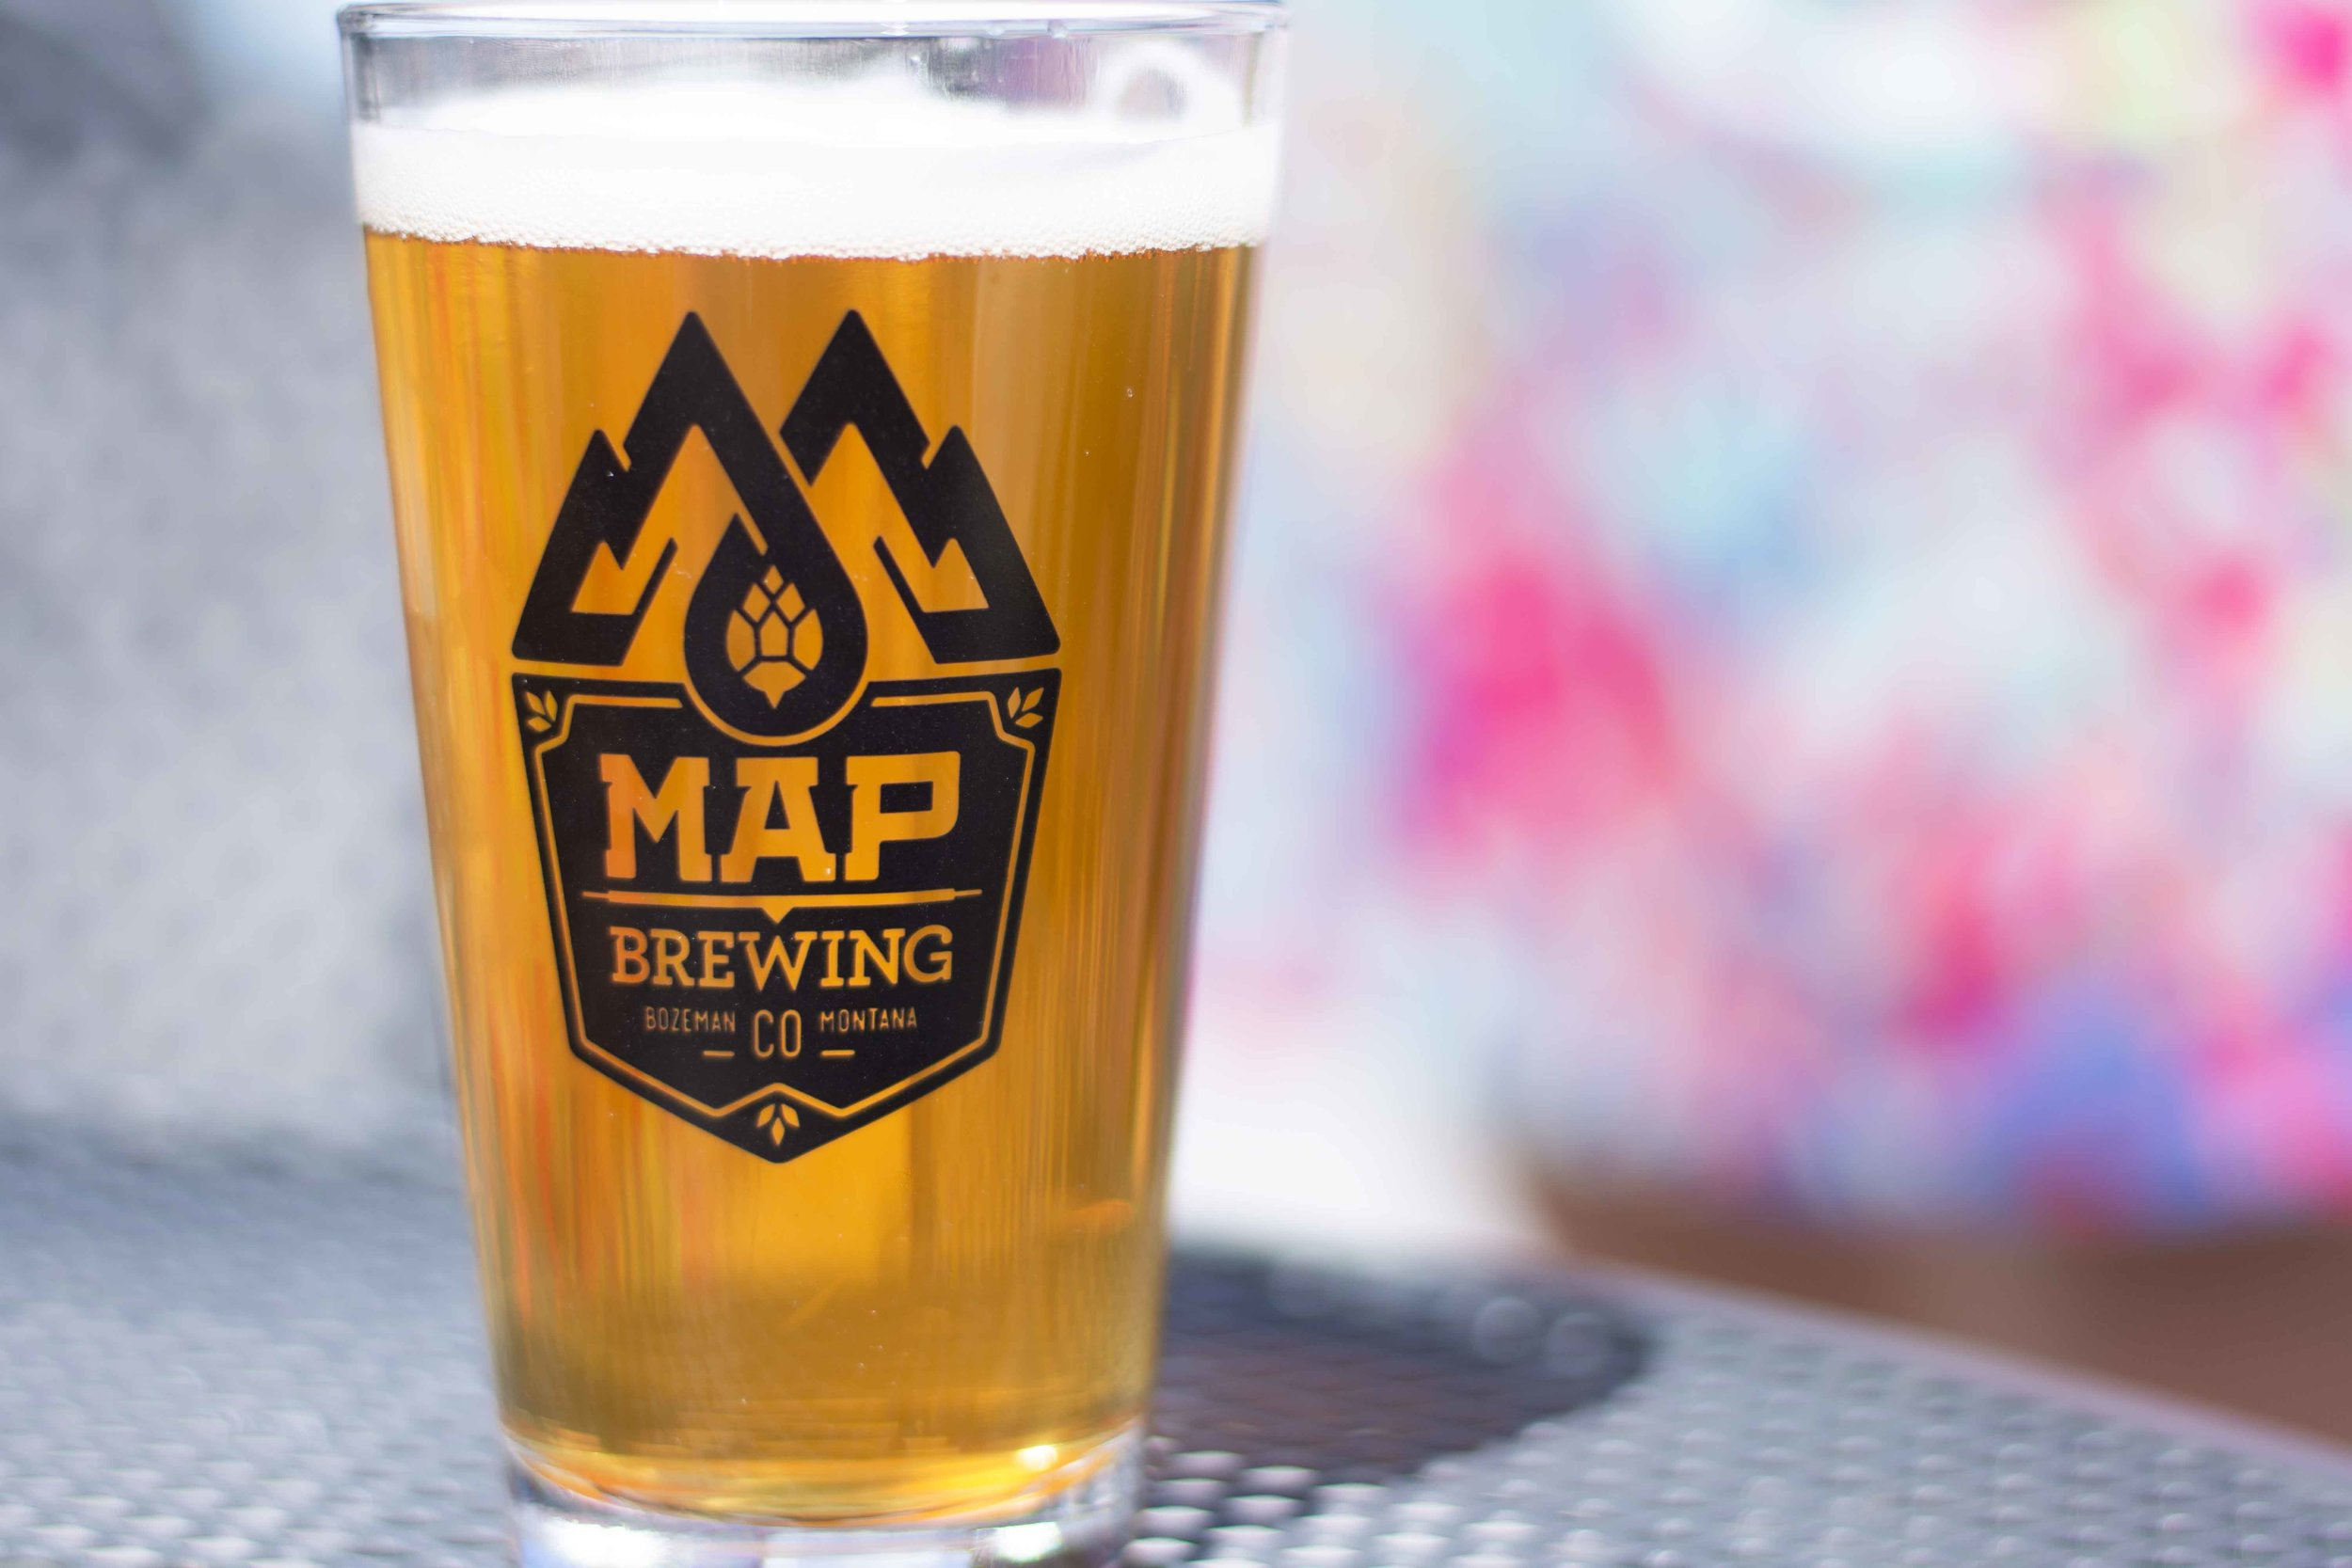 Map Brewing in Bozeman, Montana. One of the best breweries in town.